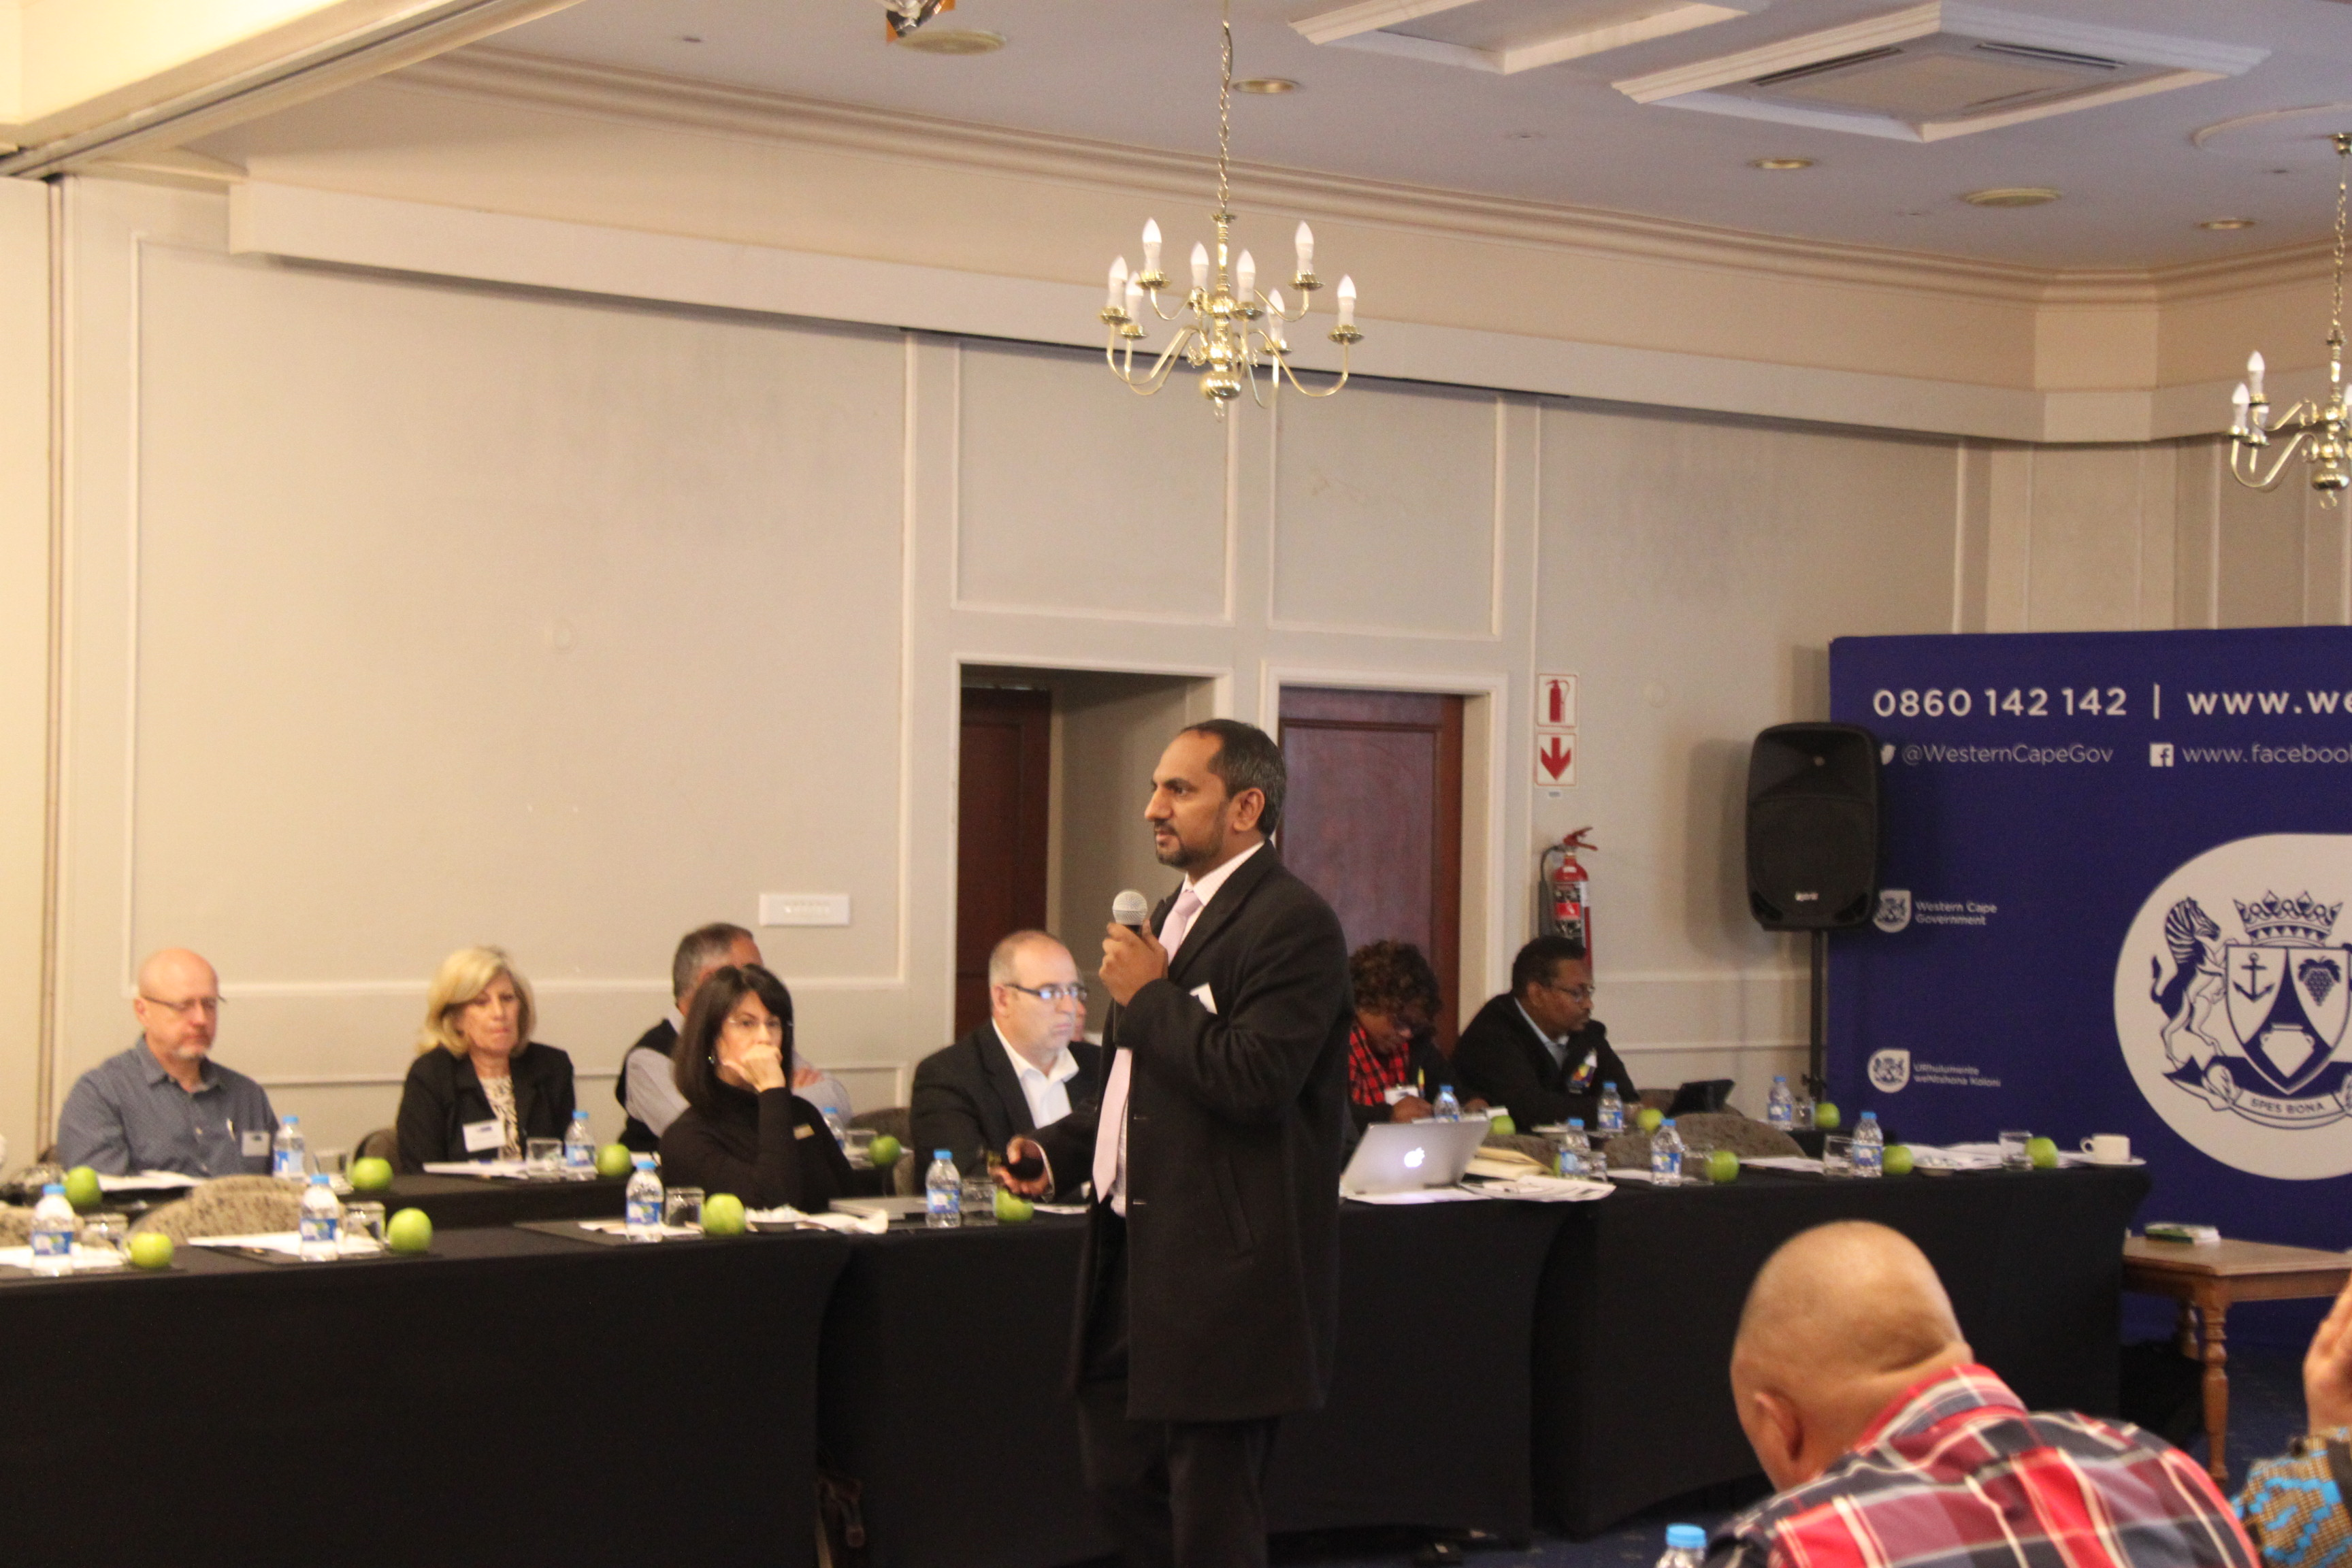 Mr Zakariya Hoosain, Head Official for the Provincial Treasury setting the scene for the workshop and expected outcomes